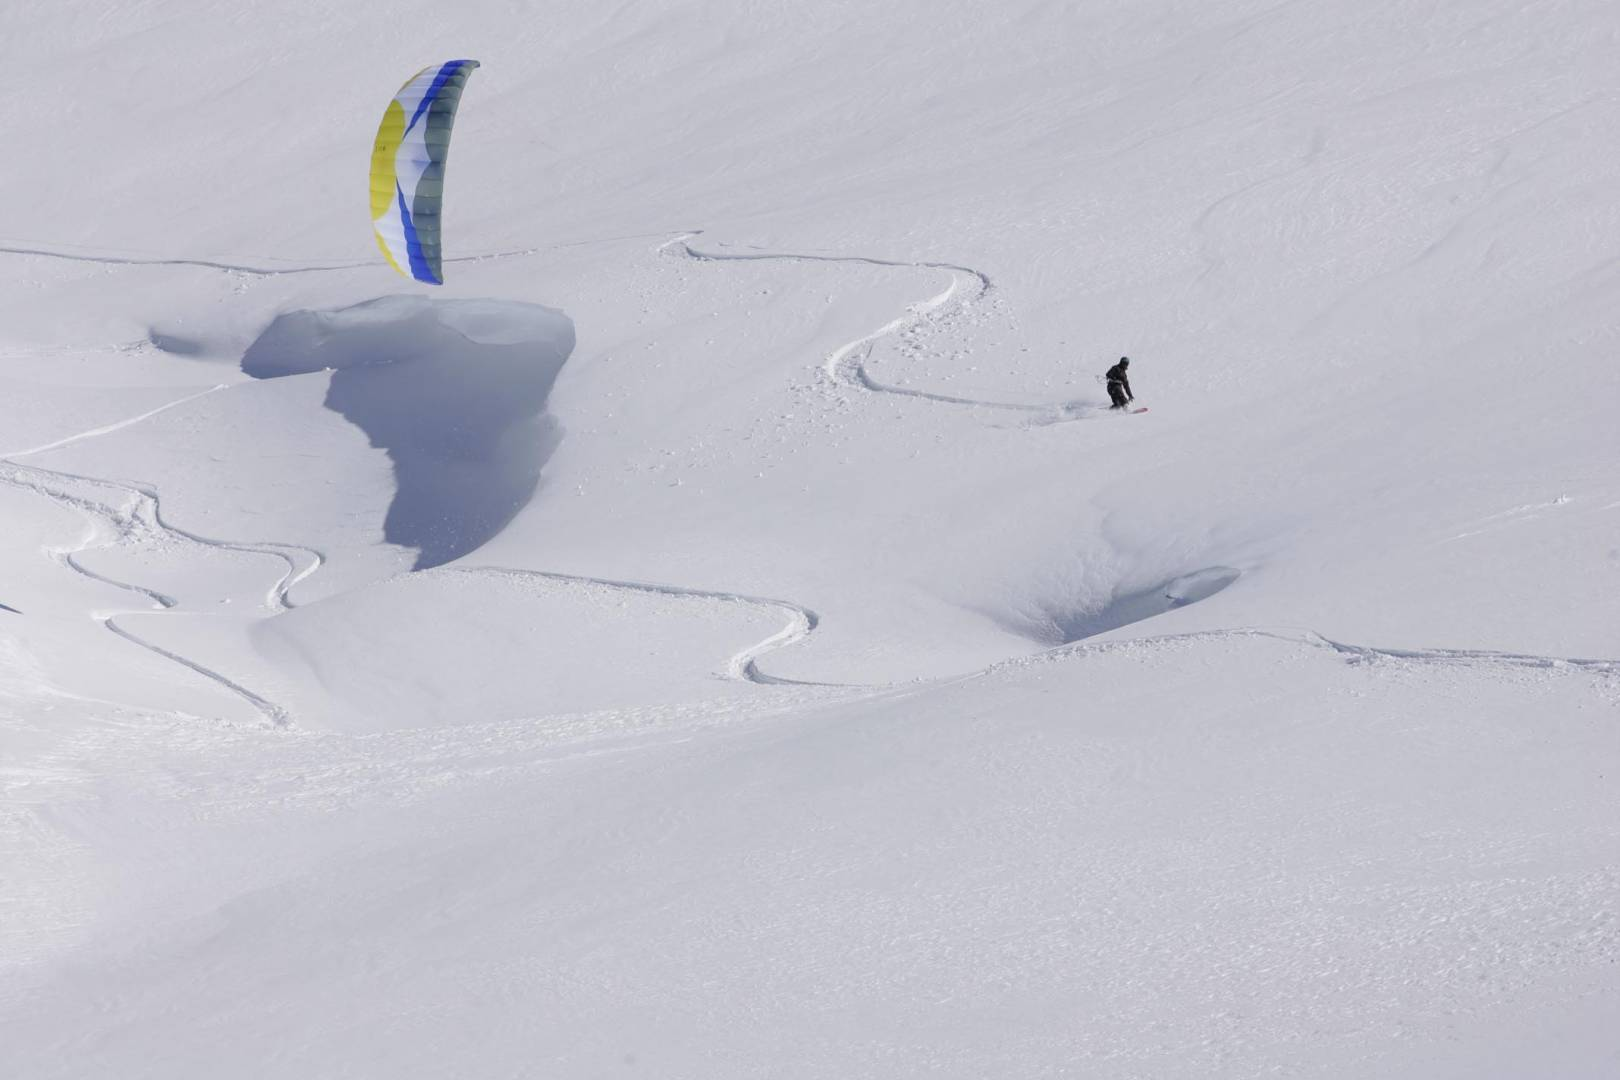 snow kite la thuile (by pietro celesia)